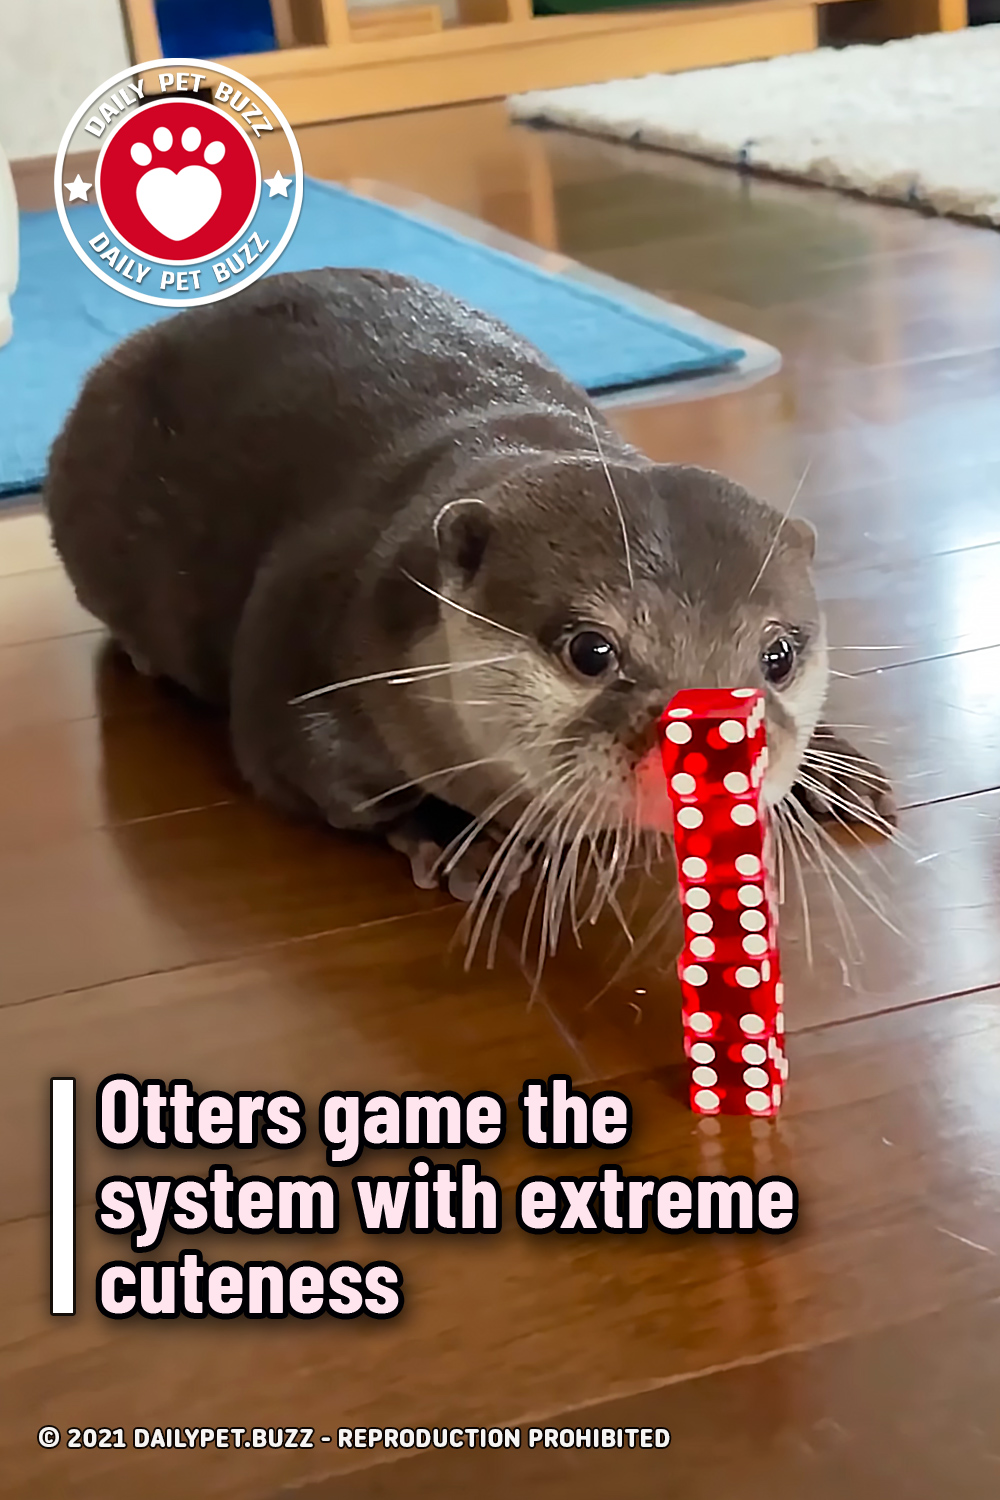 Otters game the system with extreme cuteness